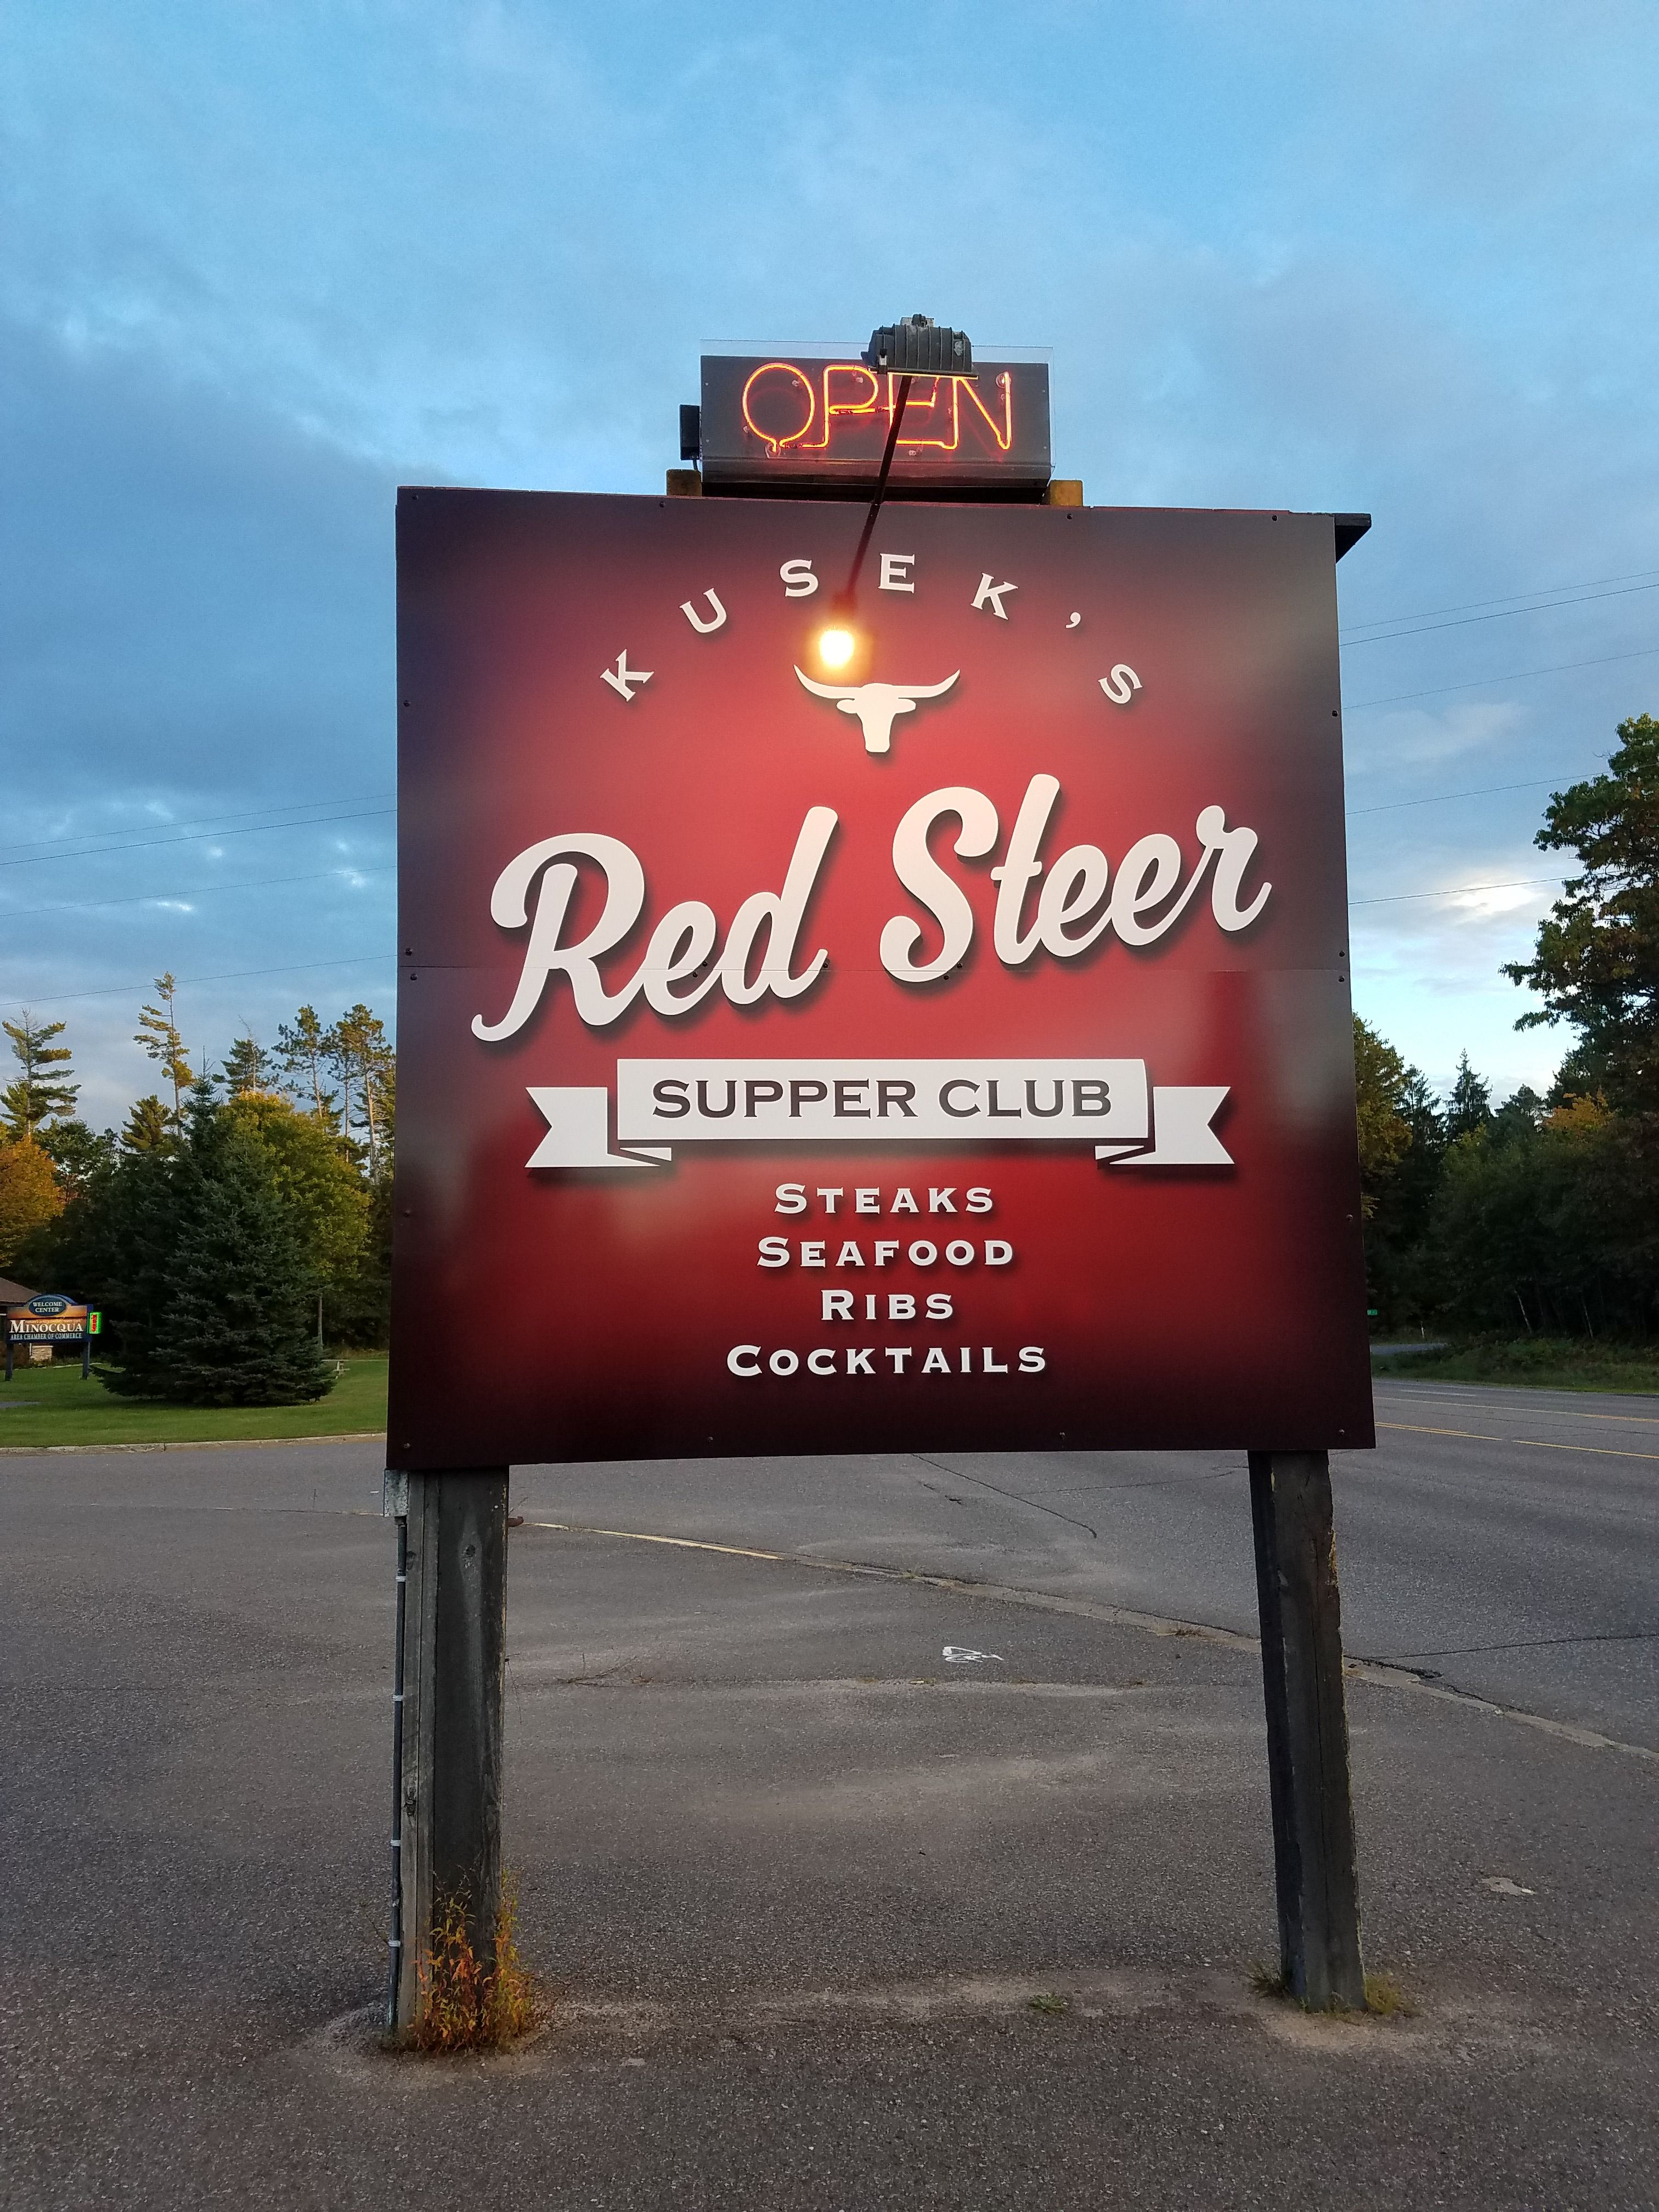 The Red Steer Minocqua WI Oct 2016 Supper Club Tour